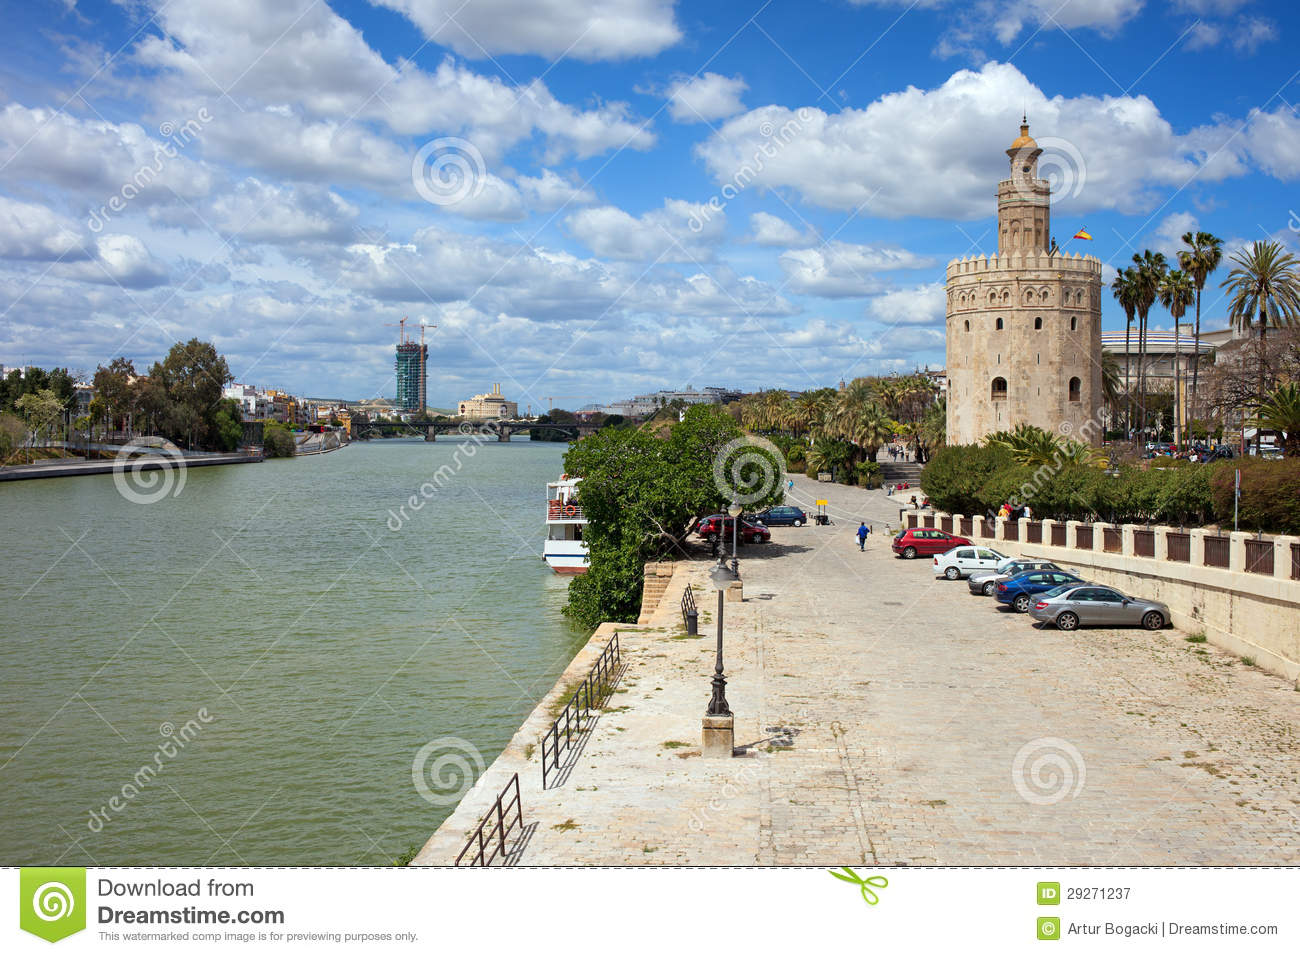 Guadalquivir River and Gold Tower in Seville